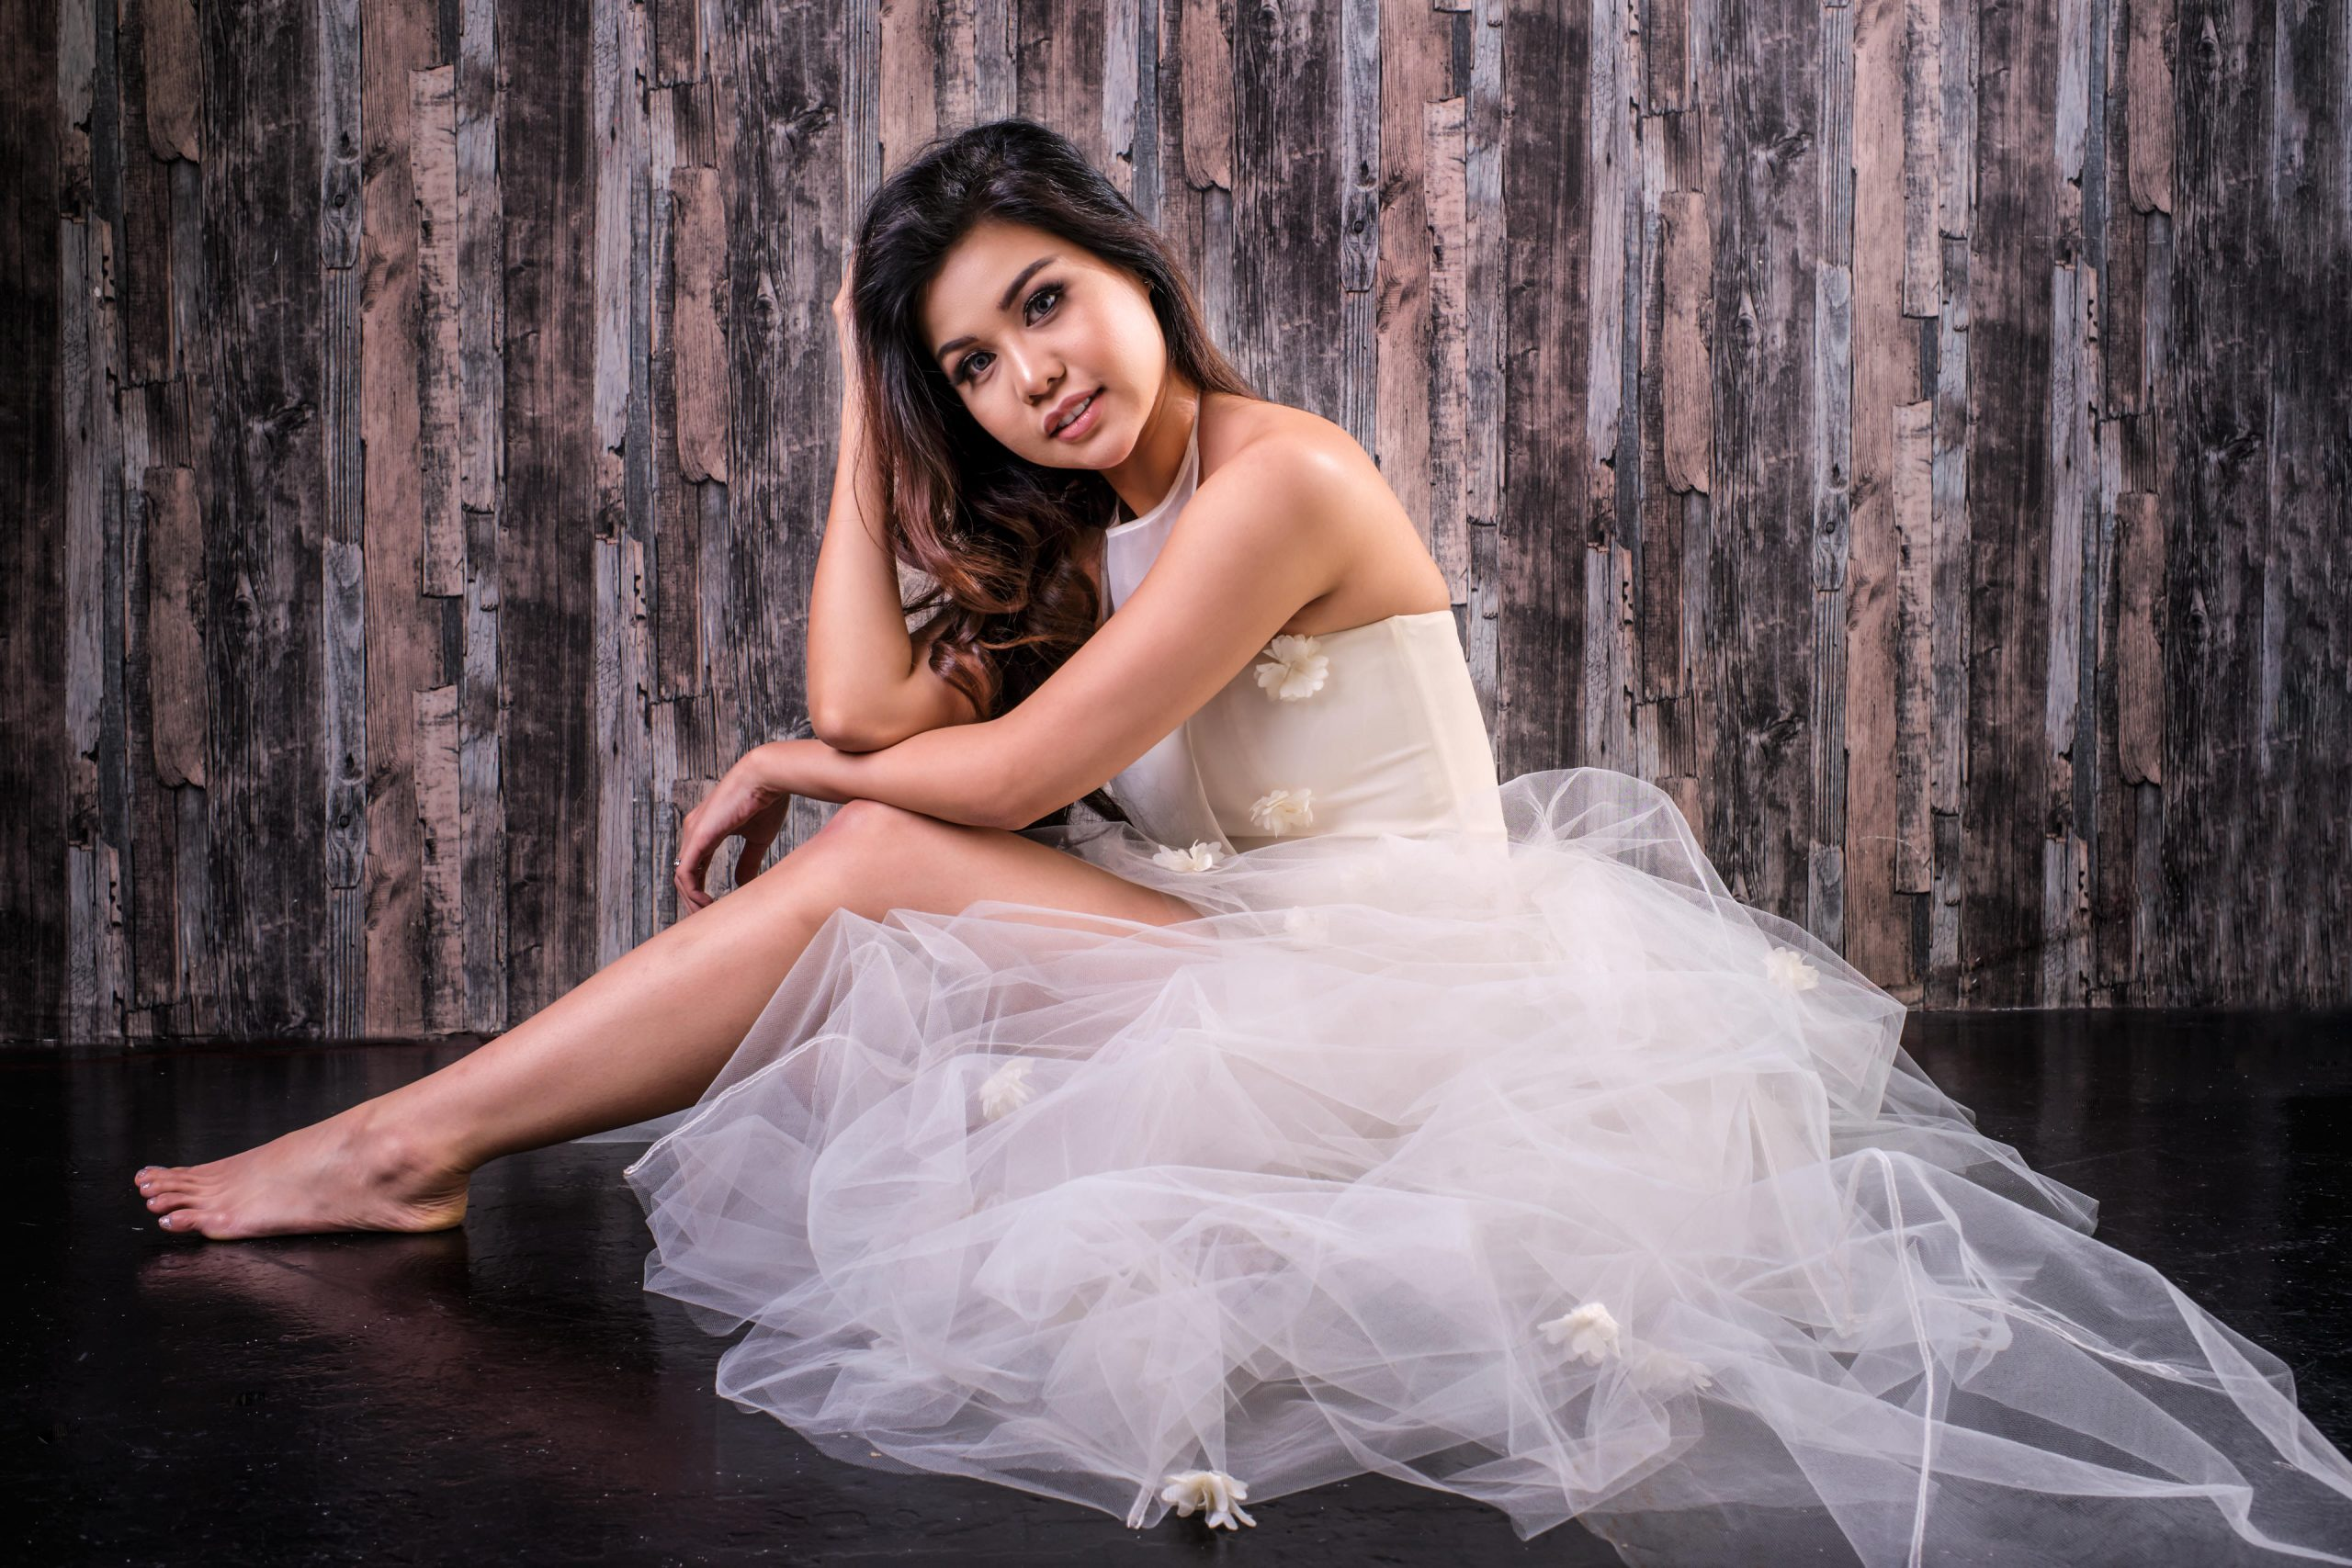 beauty-portraits-studio-wedding-dress-photo